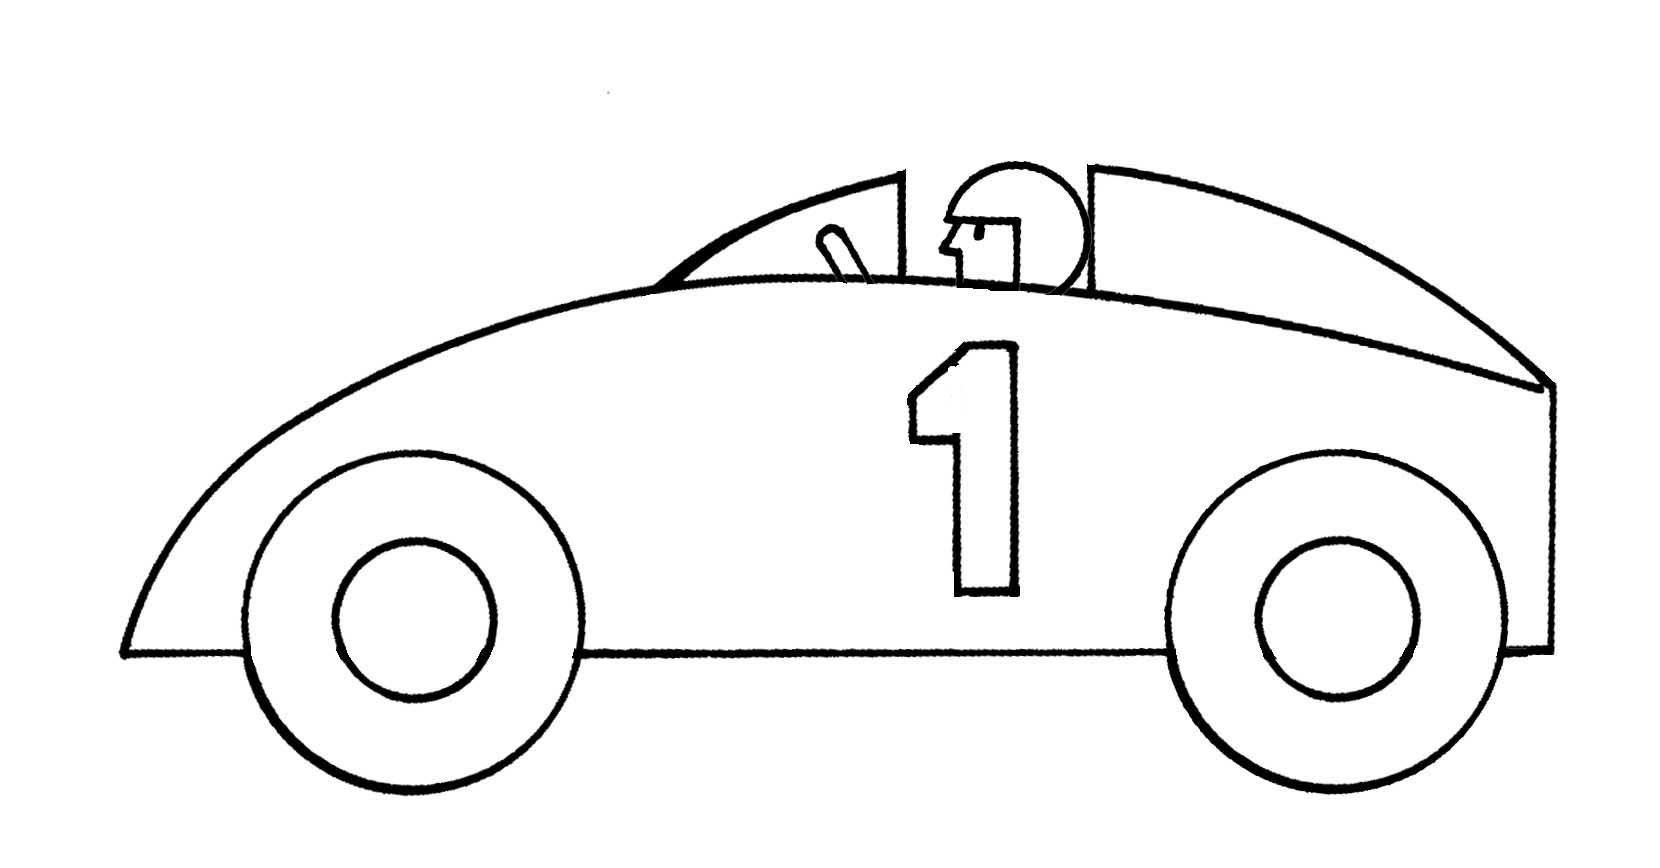 race car silhouette clip art at getdrawings com free for personal rh getdrawings com race clipart black and white race clipart